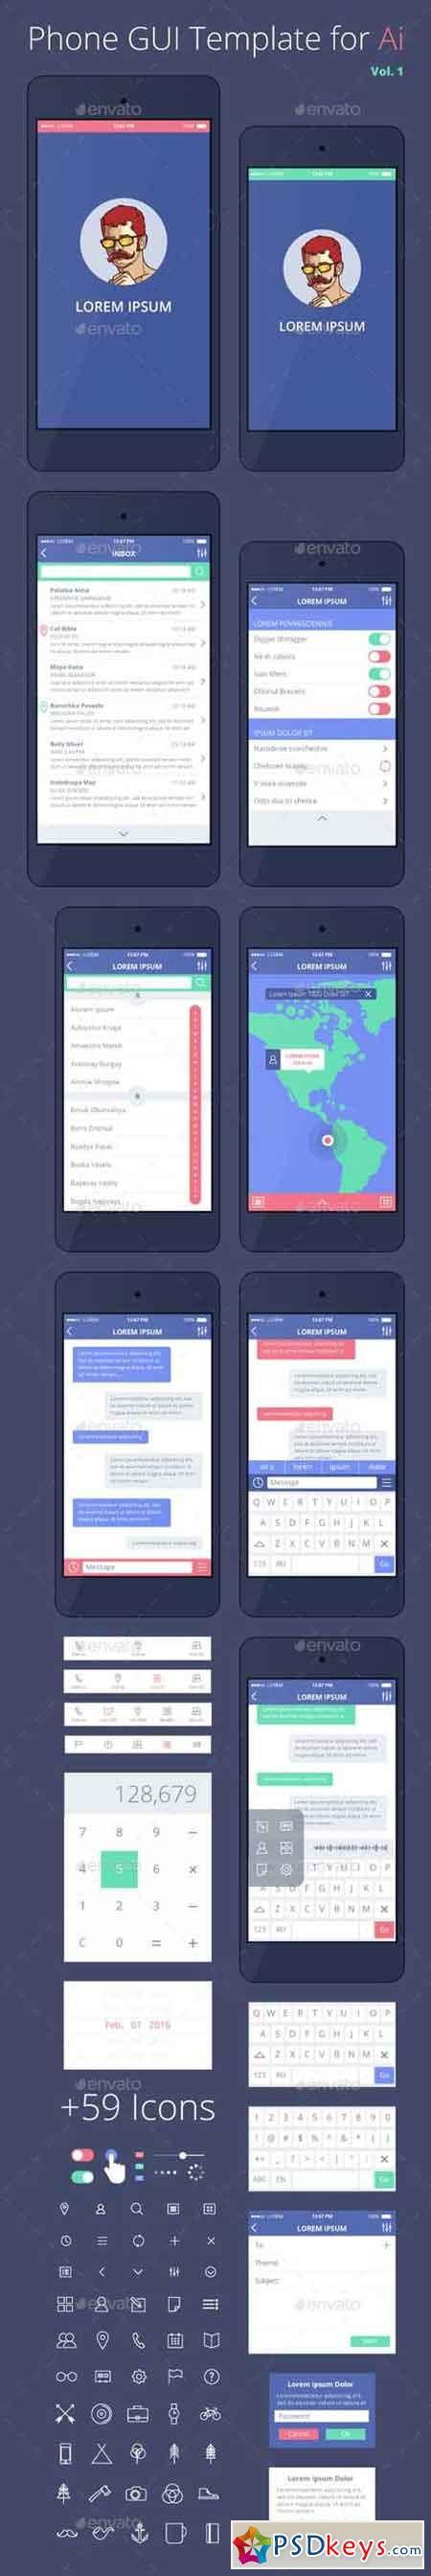 Phone GUI Template for Ai Wireframe UI Kit 14289034